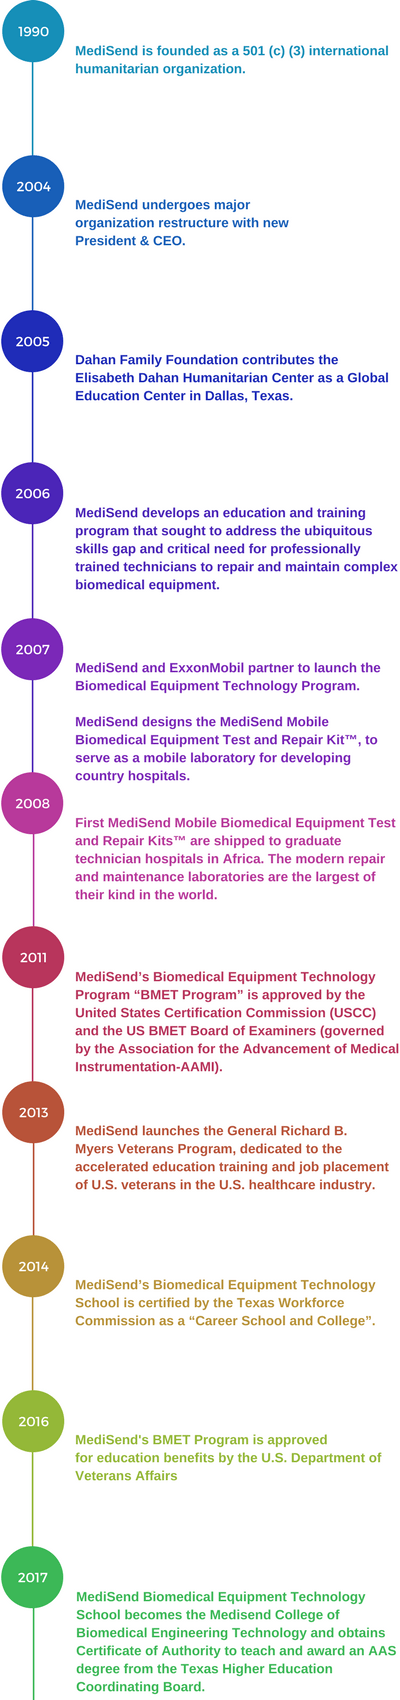 Texas Higher Education Coordinating Board awards Medisend Biomedical Equipment Technology School LLC, a certificate of authority as an Institute of Higher Learning (Texas College) with approval of an Associ (4).png